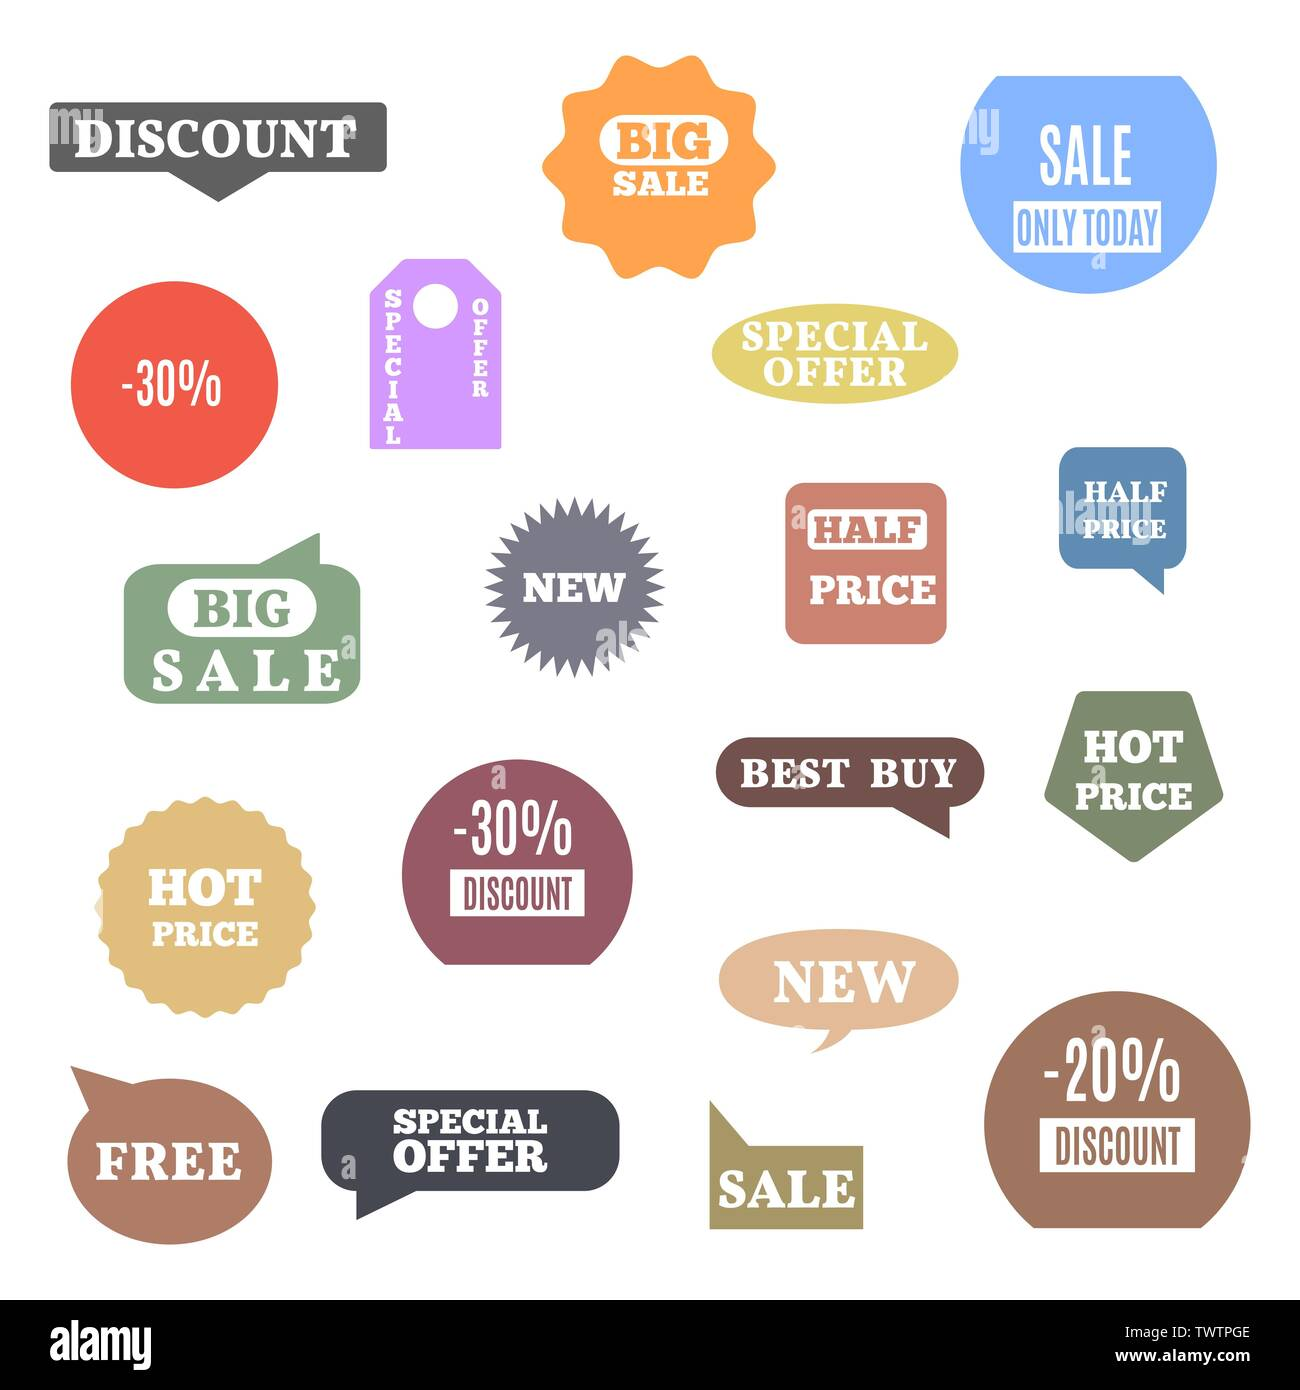 Premium quality labels for shopping, e-commerce, product, social media stickers and marketing. Flat style, vector illustration. - Stock Image